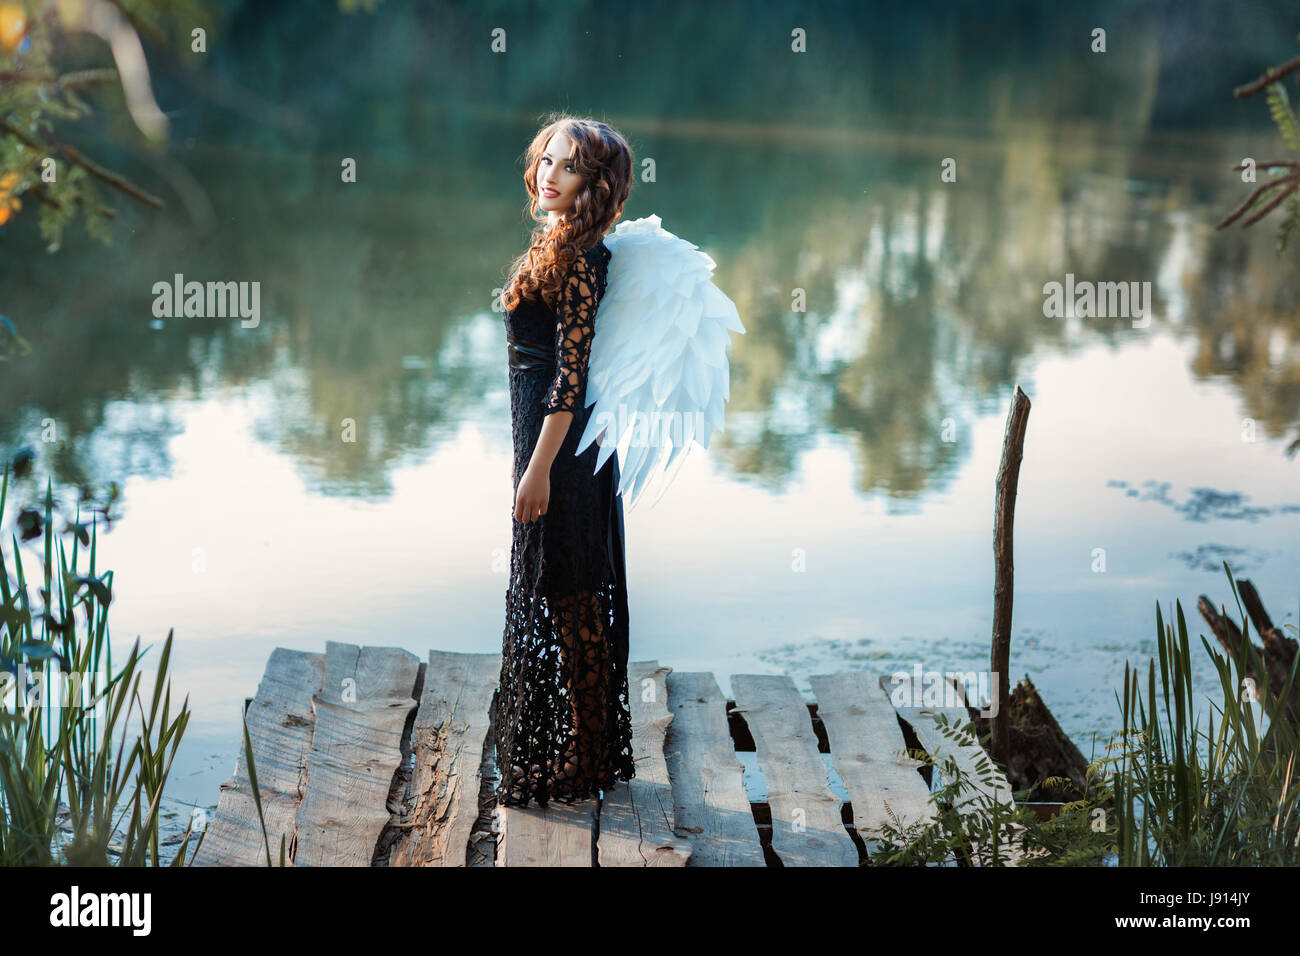 Girl with angel wings standing on the pier and smiling. This occurs in the open air on a river. - Stock Image